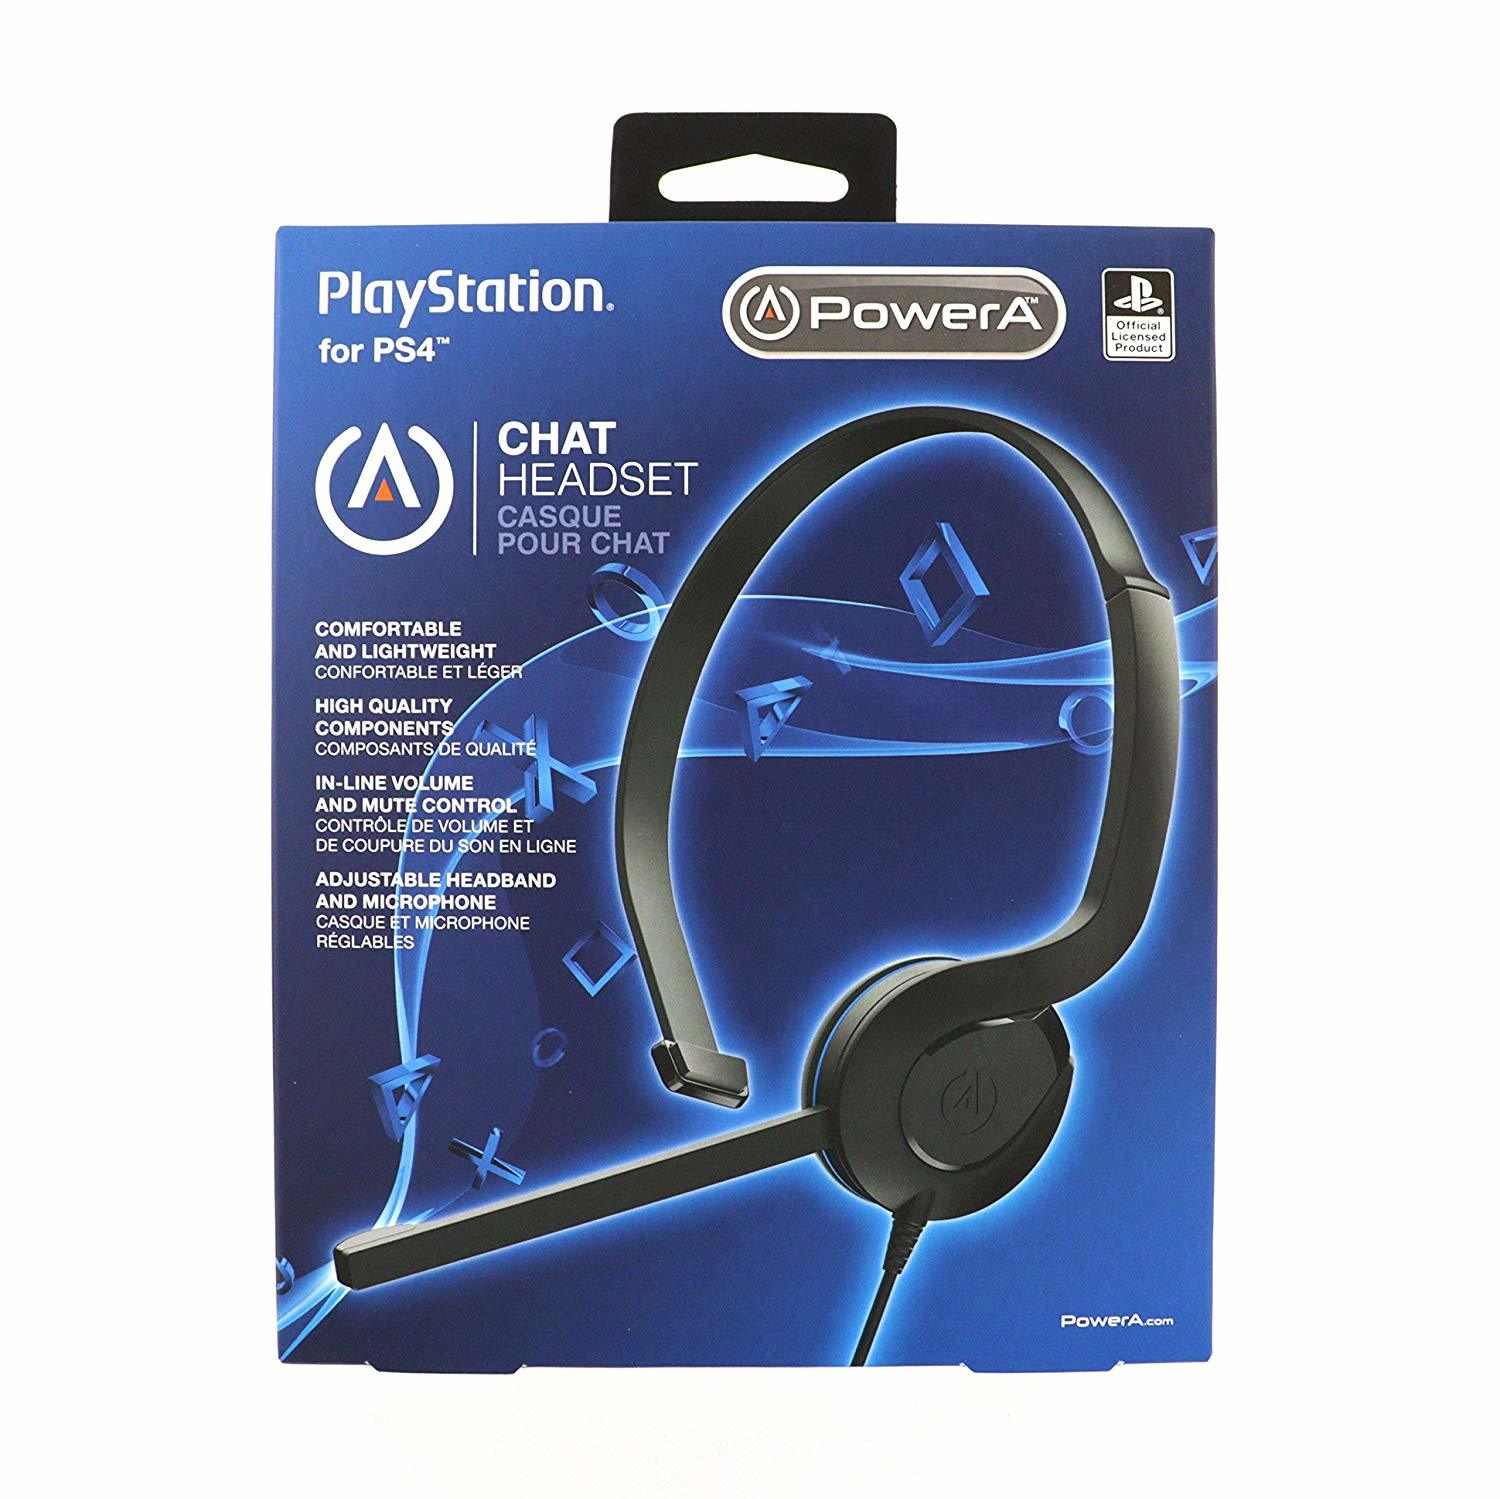 PS4 Licensed Chat Headset for PS4 image